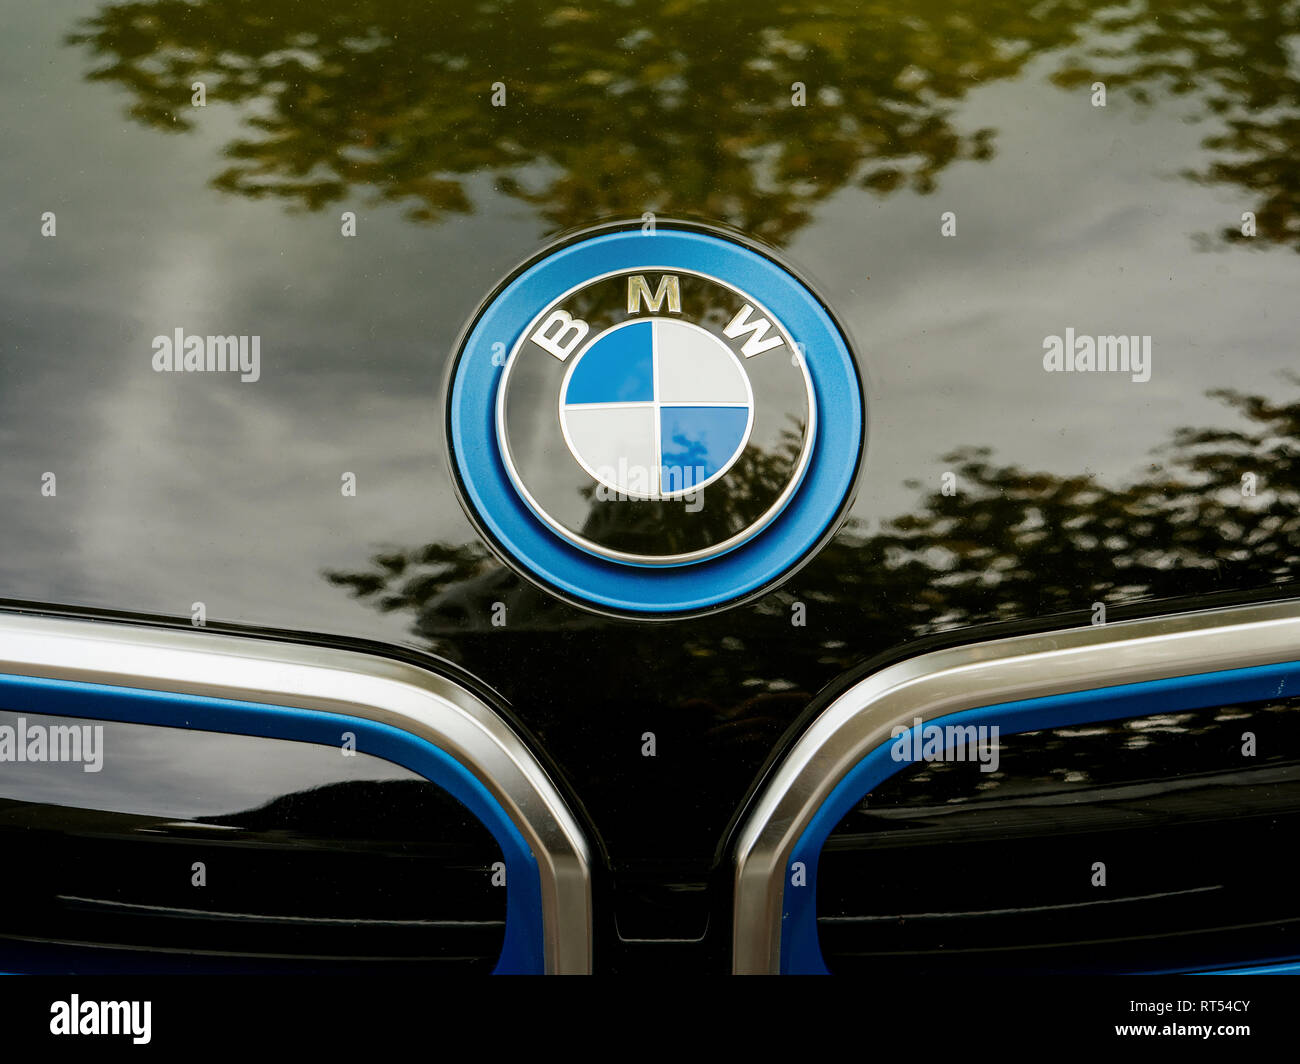 STRASBOURG, FRANCE - MAY 30, 2017: Front above view of blue BMW logotype on the electric i1 limousine  - Stock Image